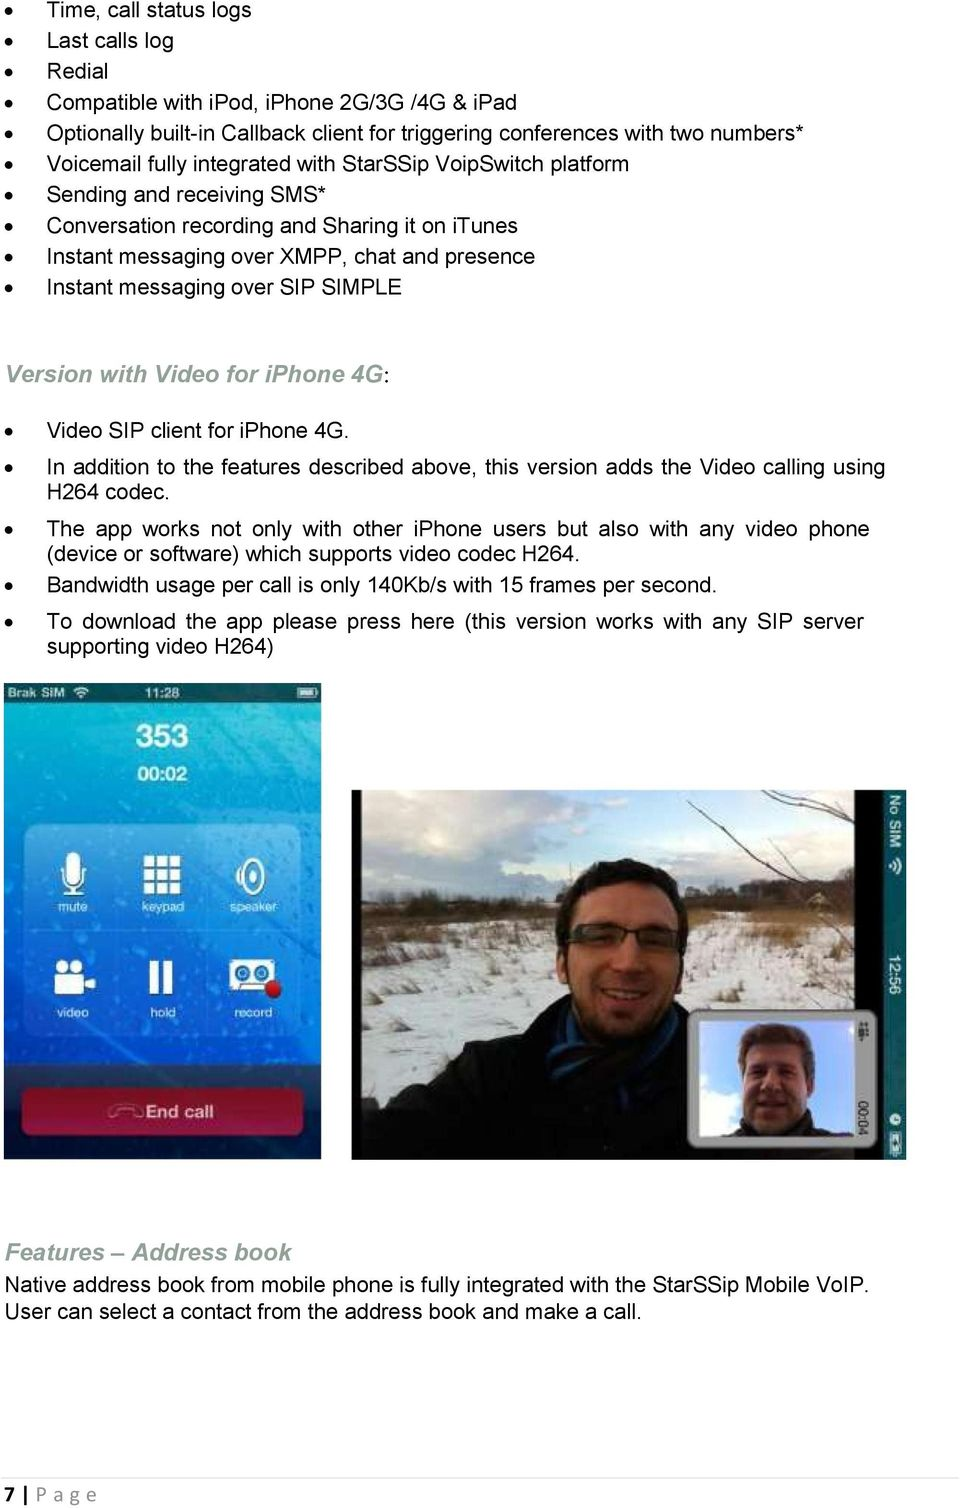 with Video for iphone 4G: Video SIP client for iphone 4G. In addition to the features described above, this version adds the Video calling using H264 codec.